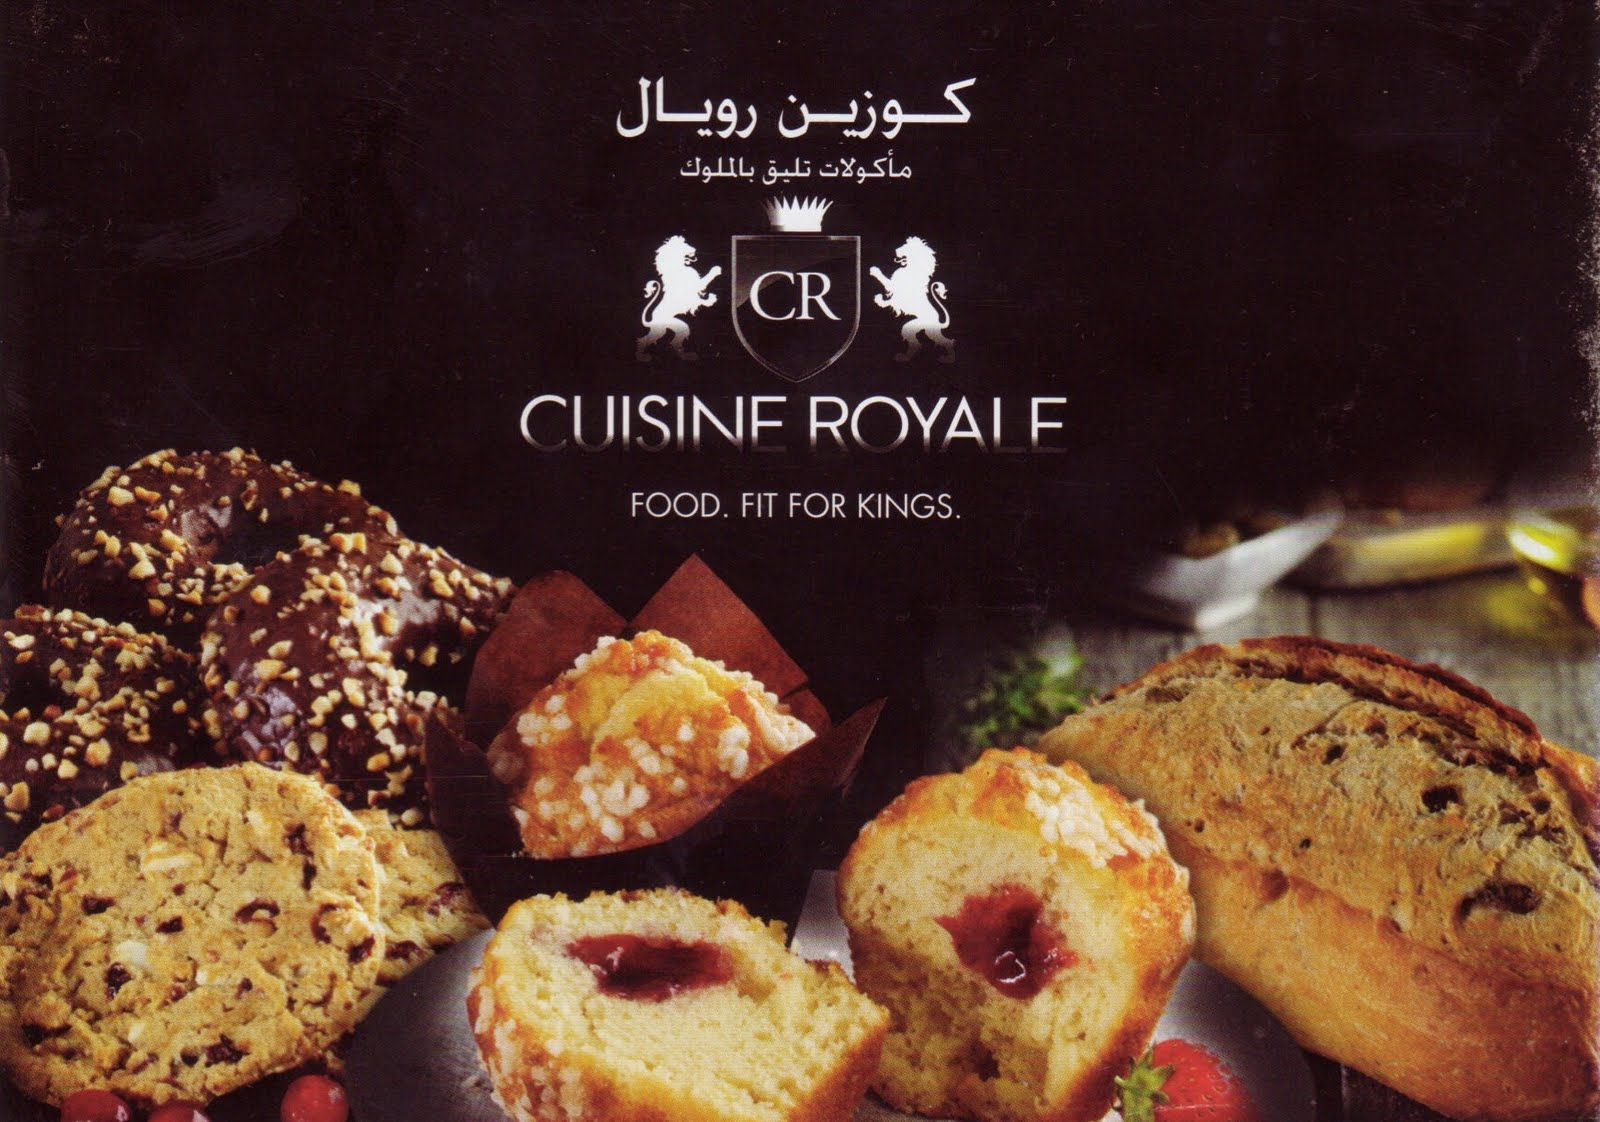 Anna maria coles in trouble over cuisine royale bread for Cuisine royale